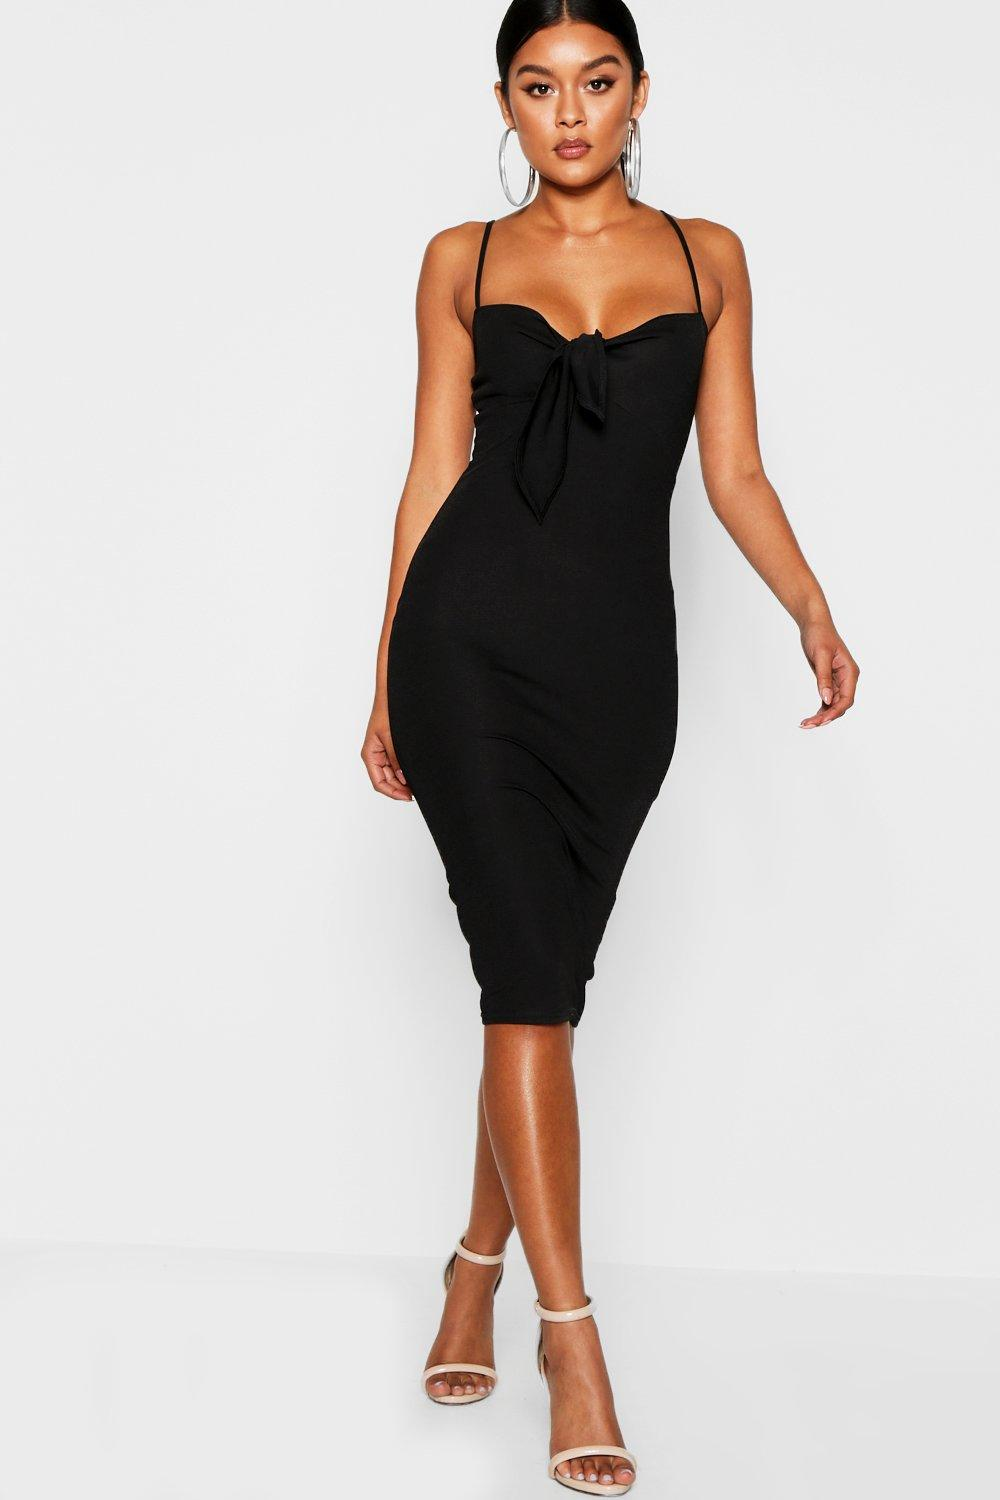 c020be1883 Skinny Strap Tie Front Midi Dress. Hover to zoom